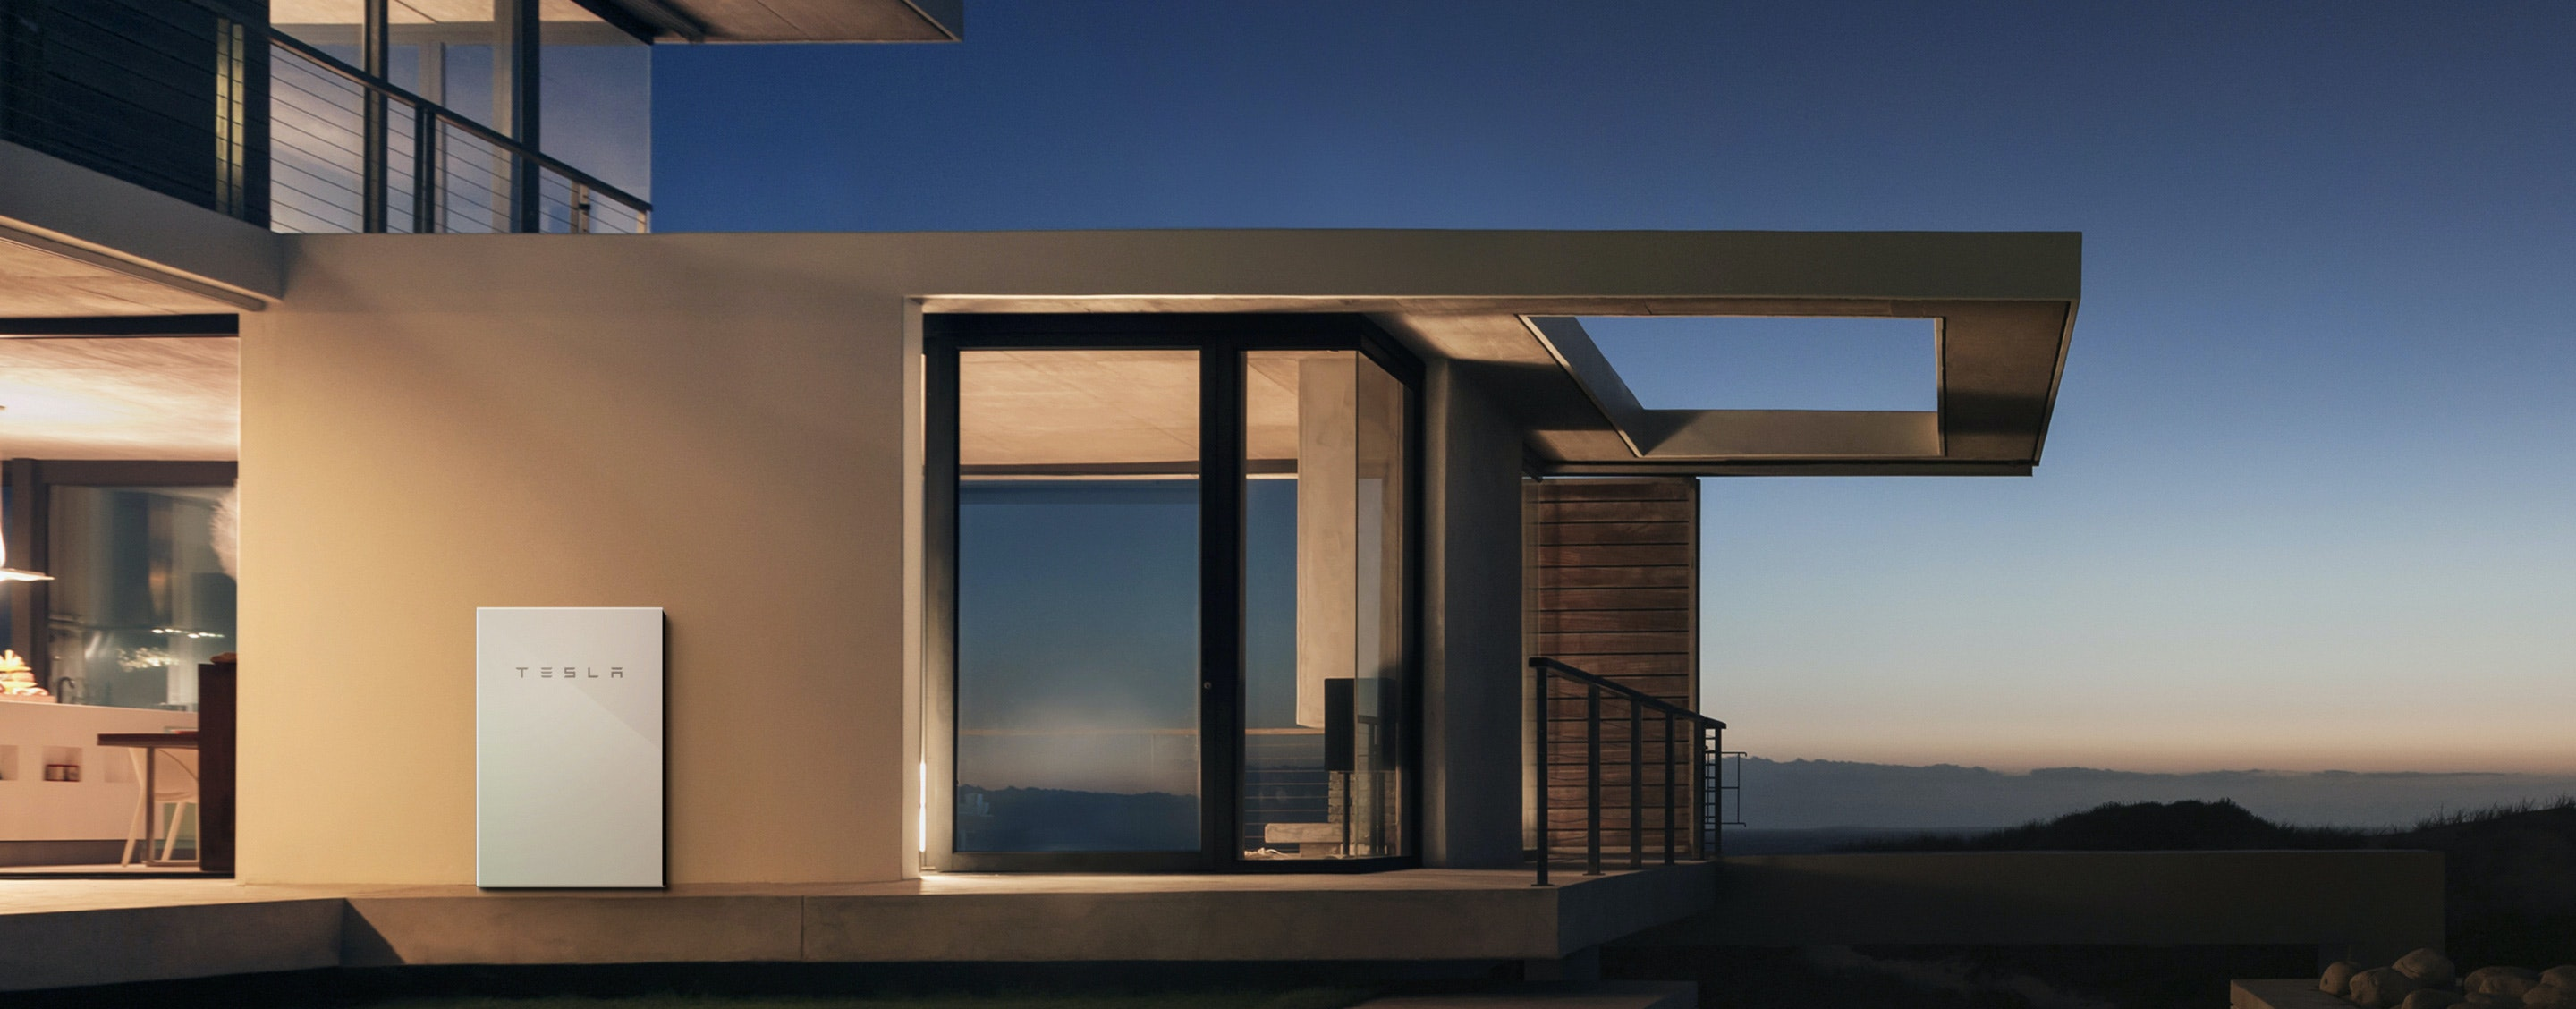 Tesla's Latest Product Uses Solar Energy to Protect Against Power Cuts